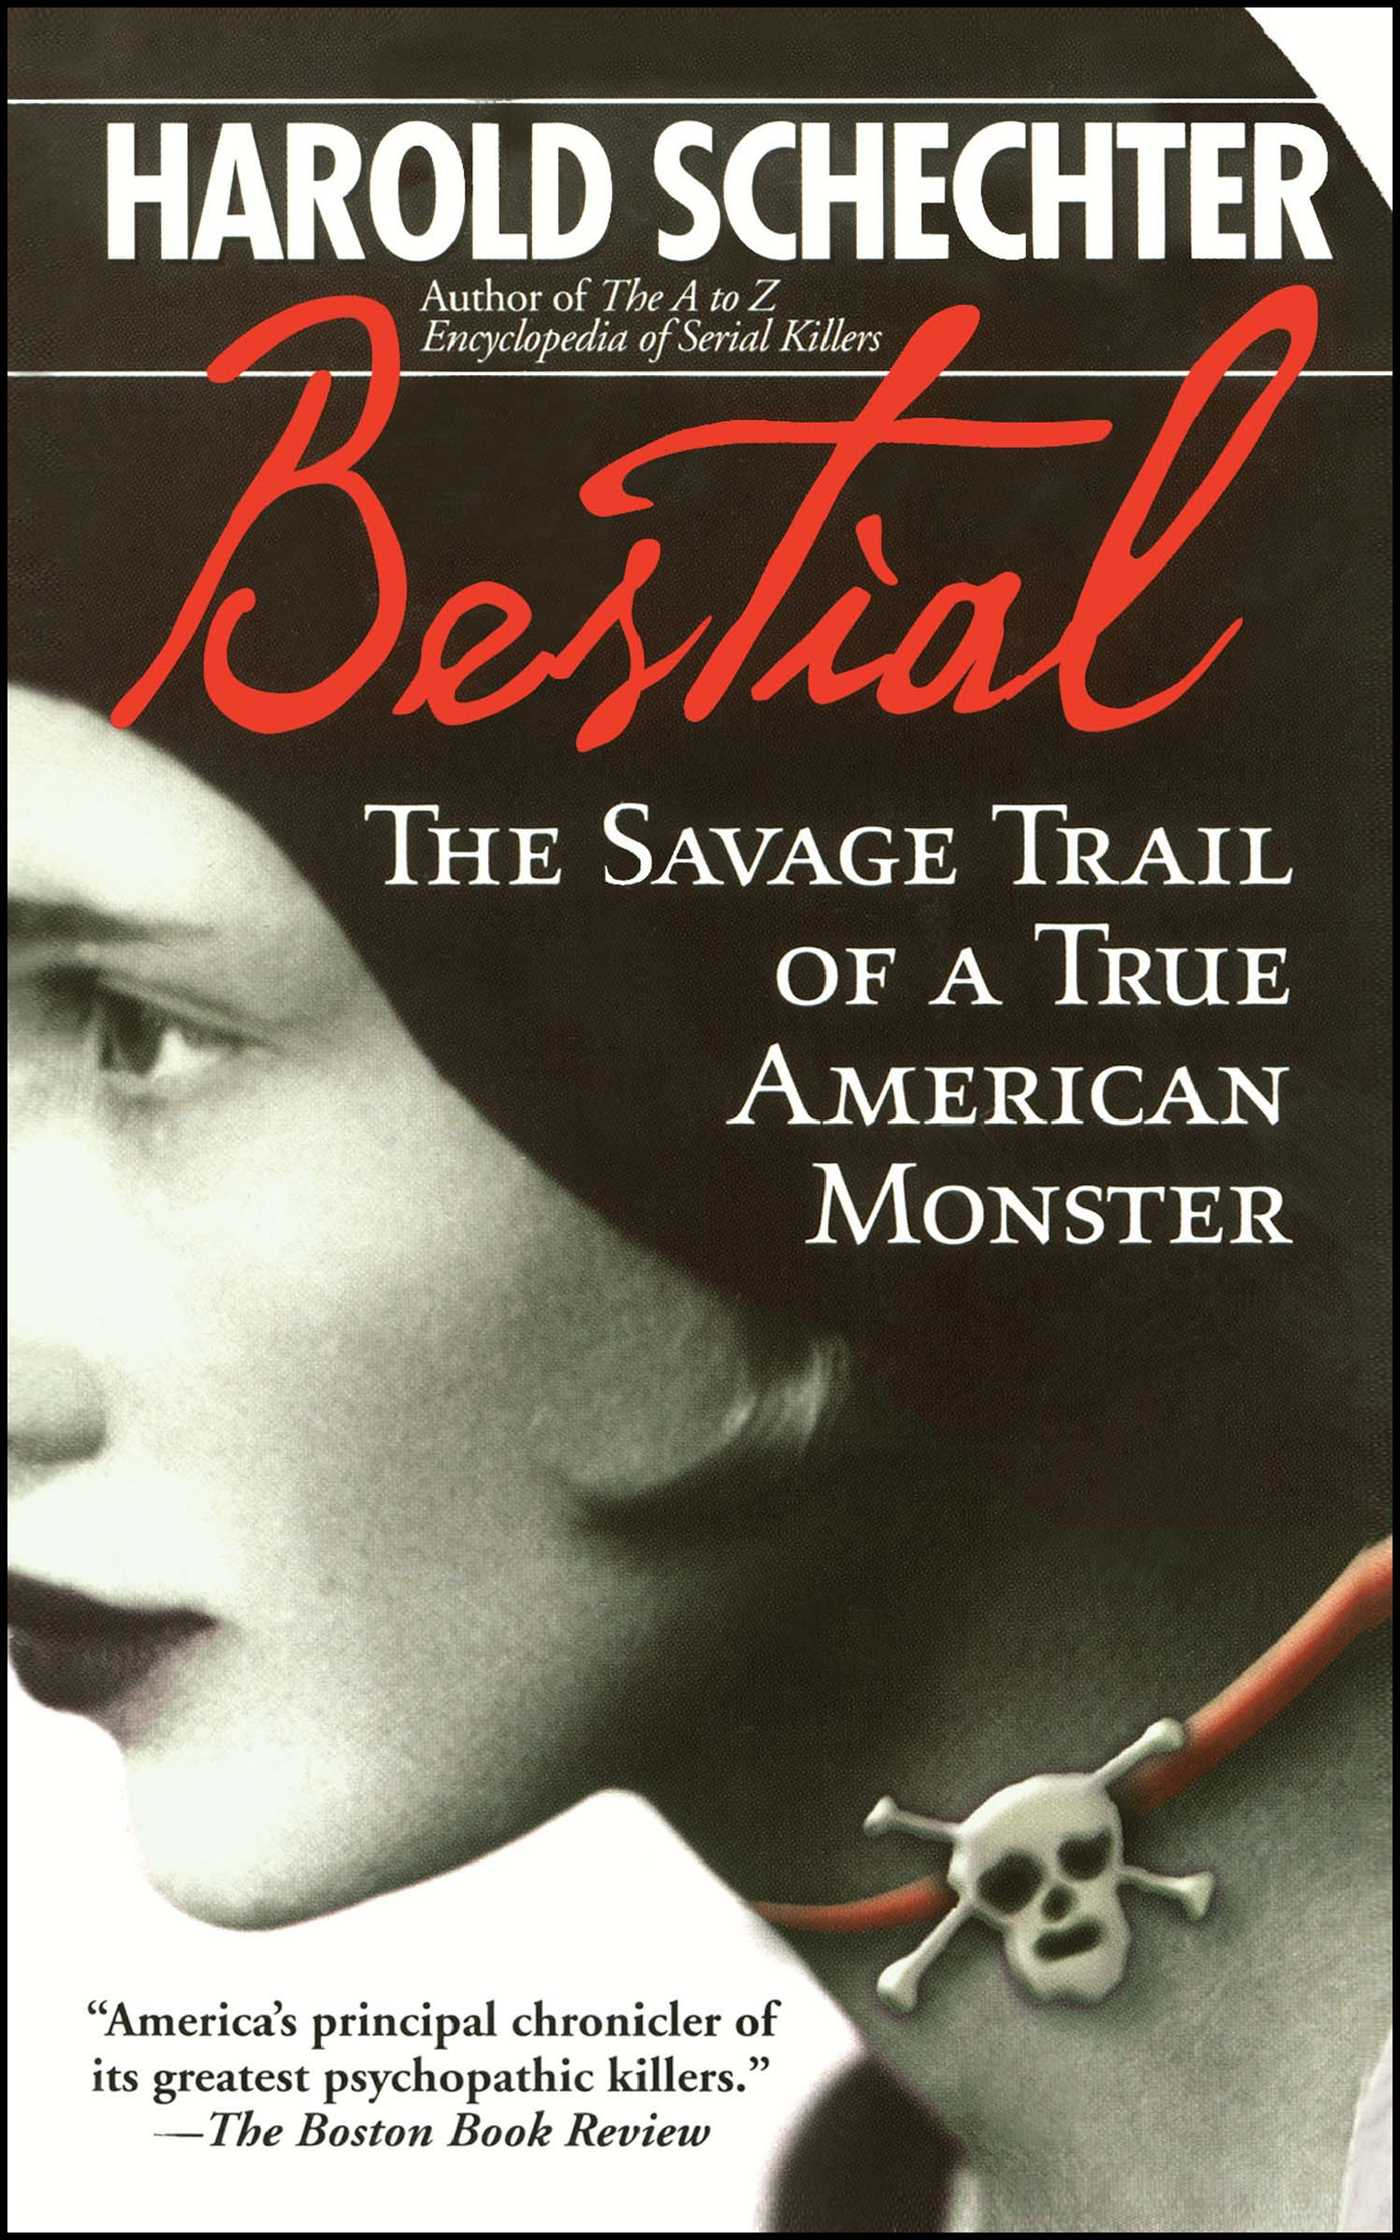 Bestial The Savage Trail of a True American Monster